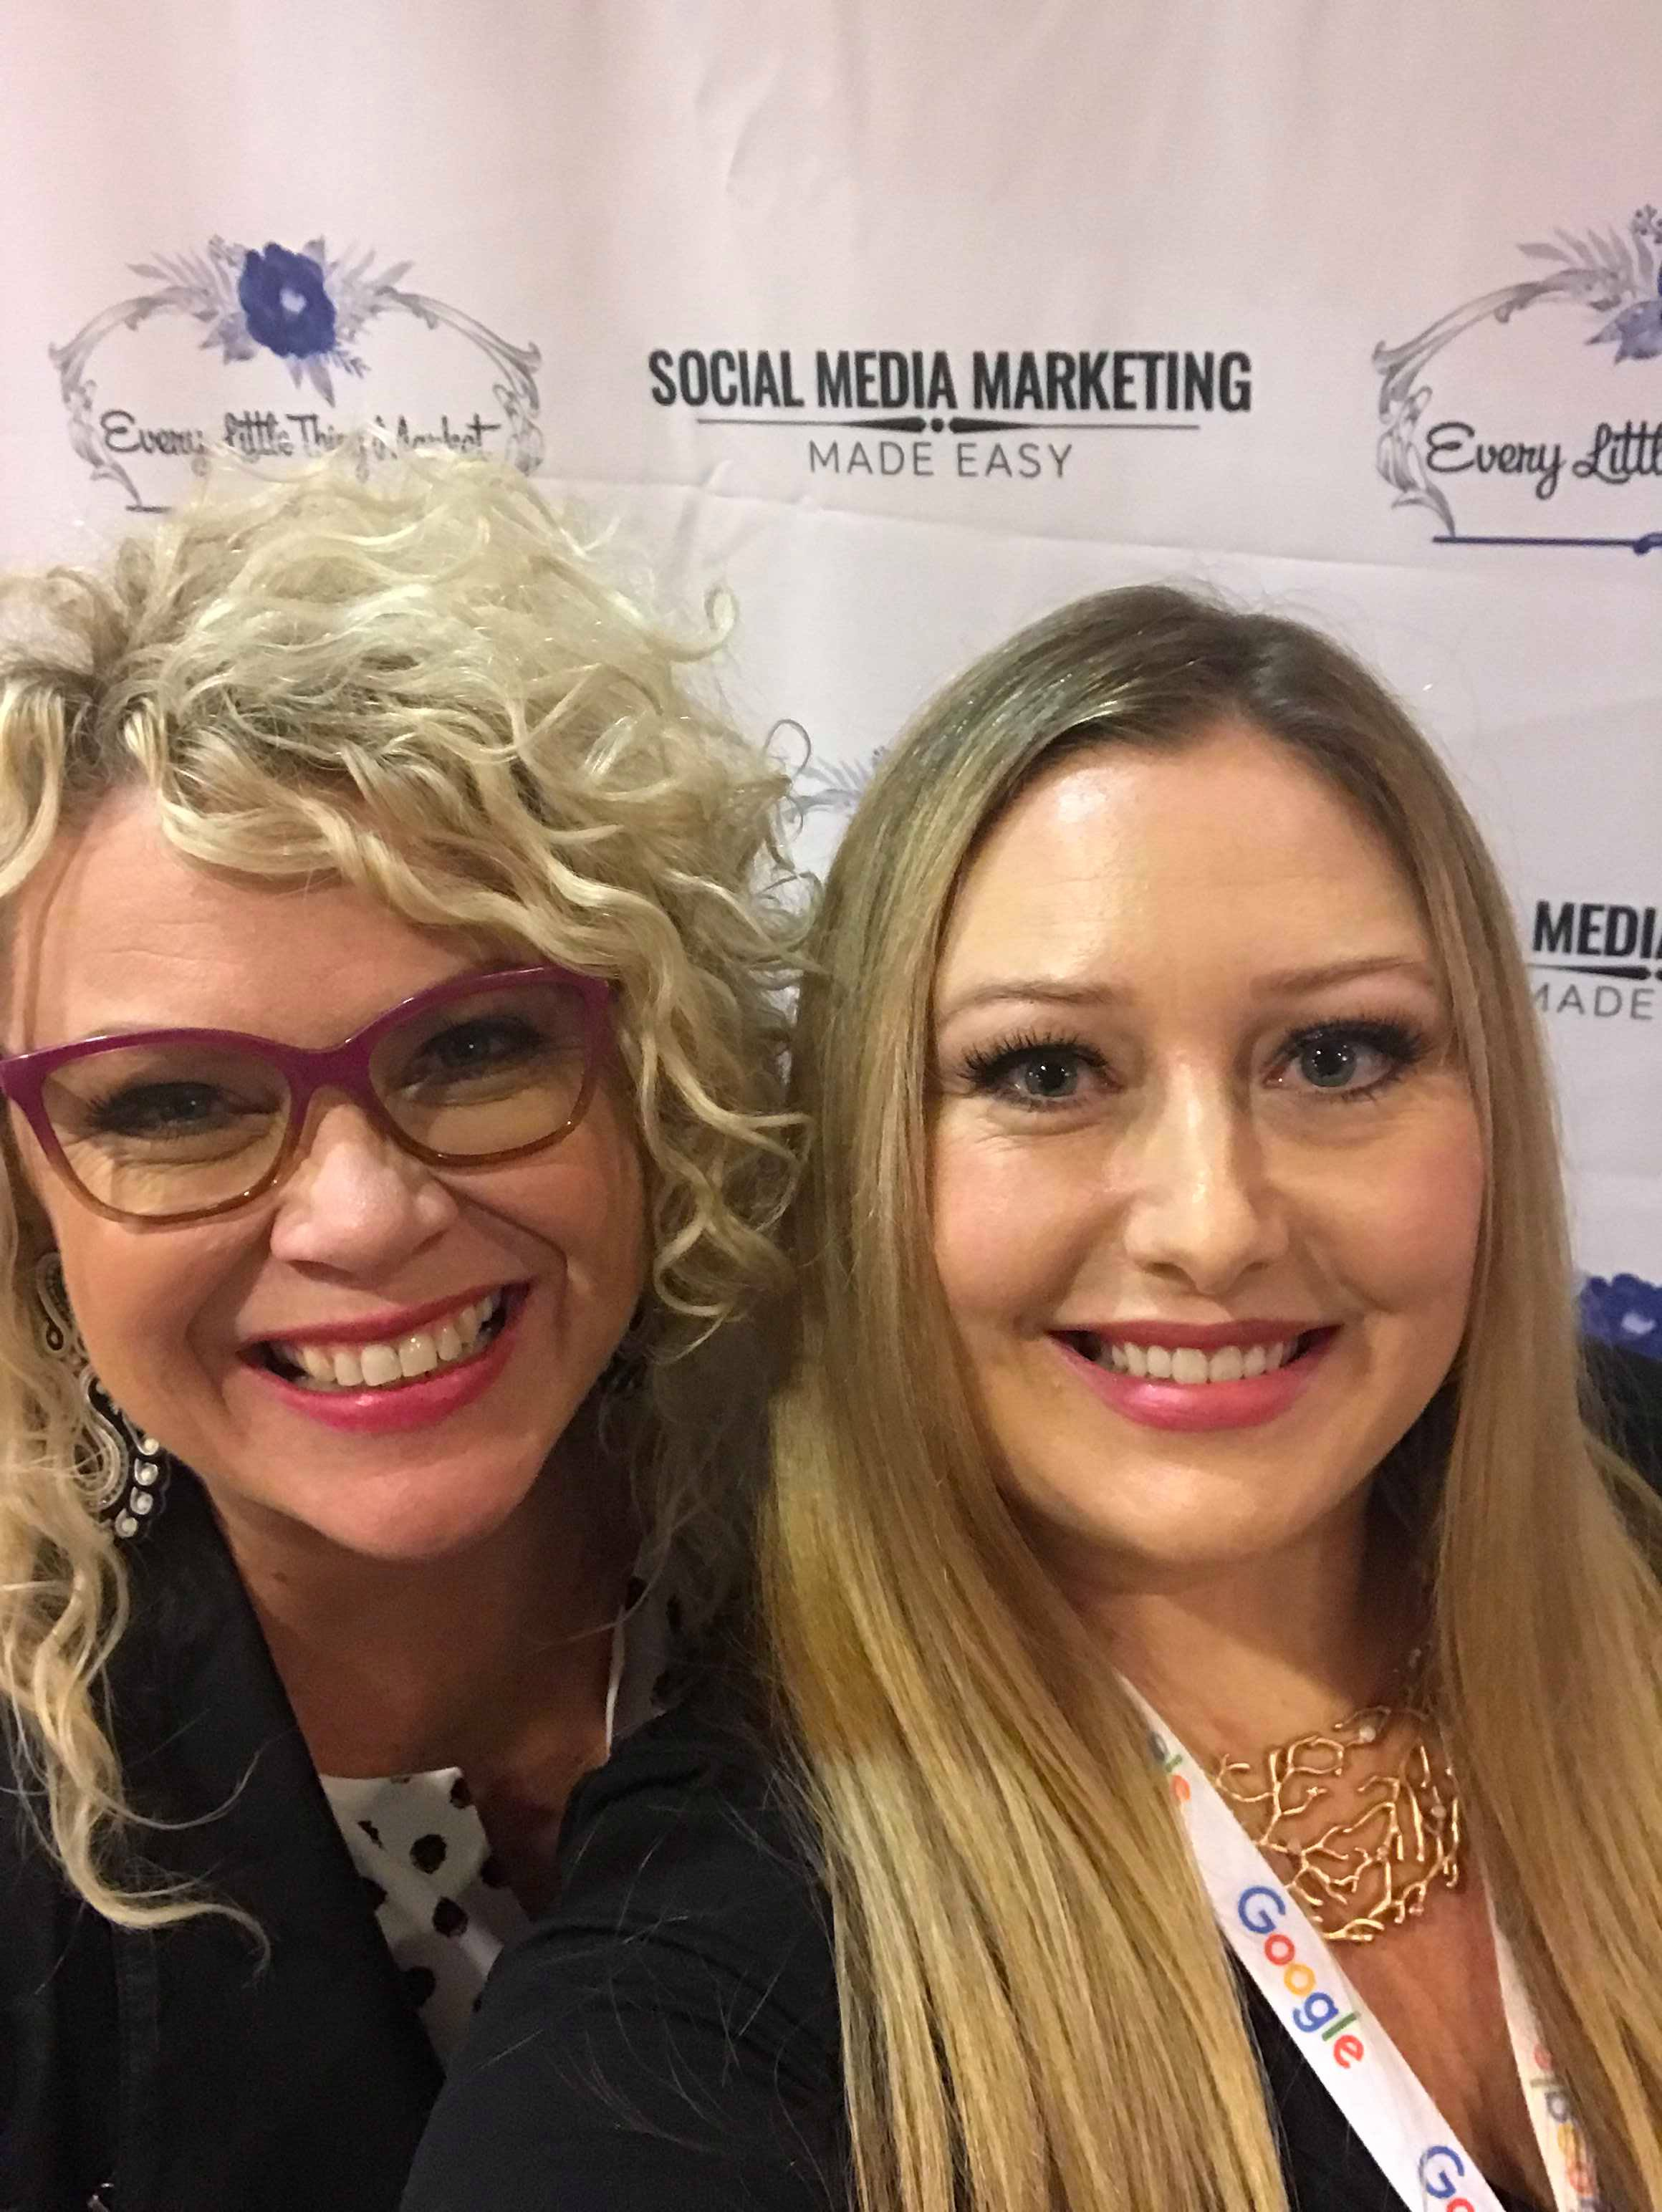 Social Media Marketing Jennifer Allwood.jpg